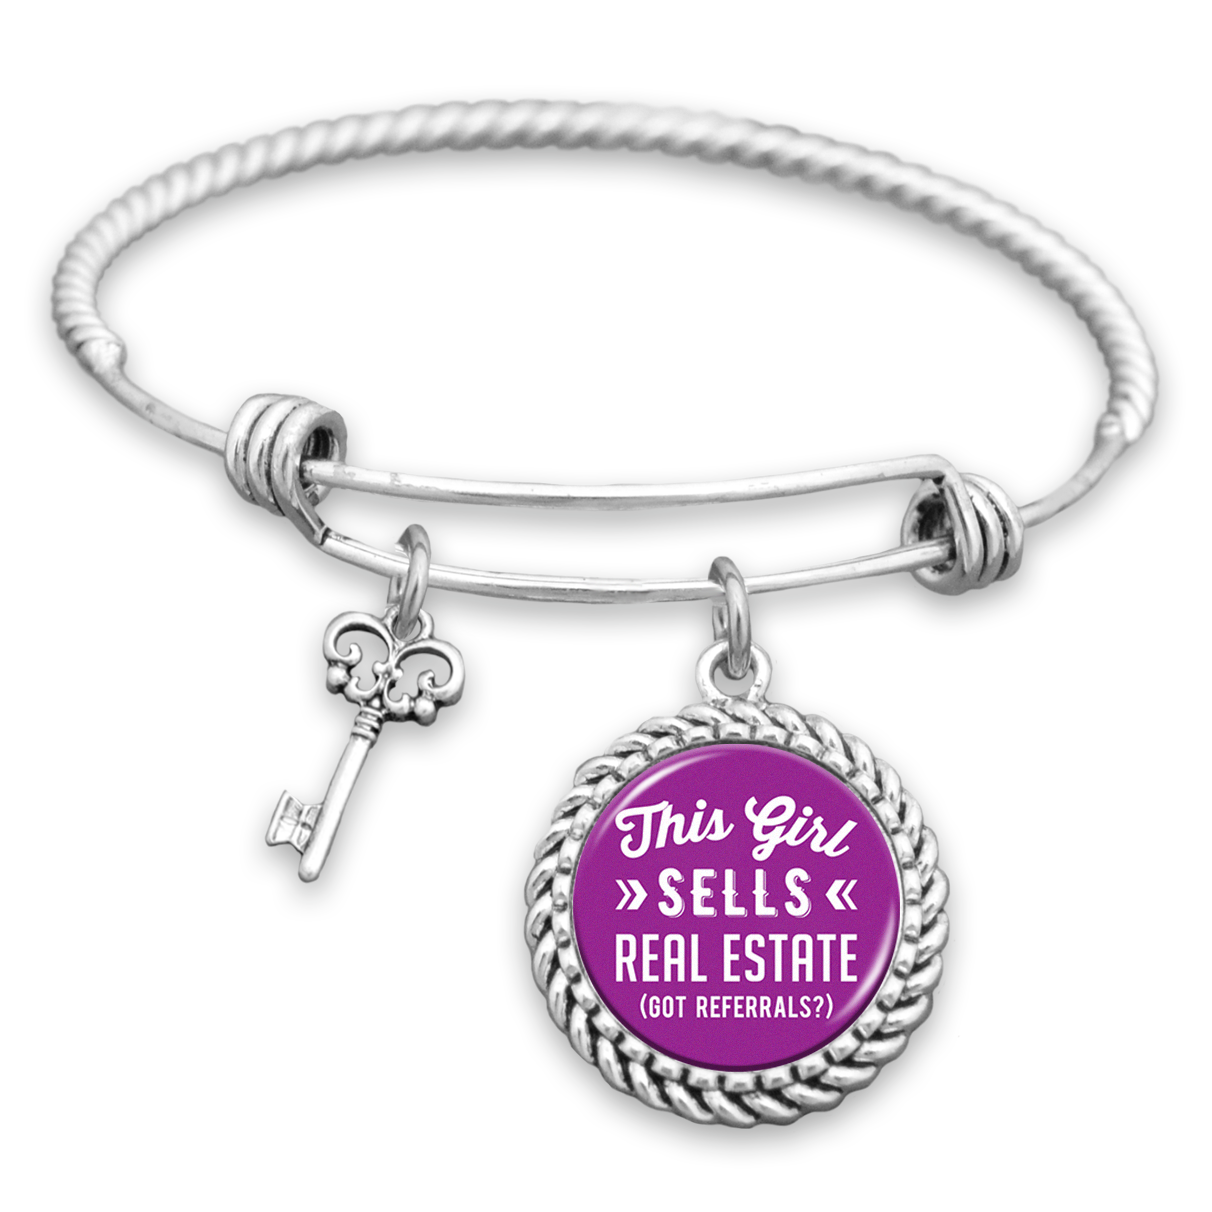 This Girl Sells Real Estate (Got Referrals?) Charm Bracelet